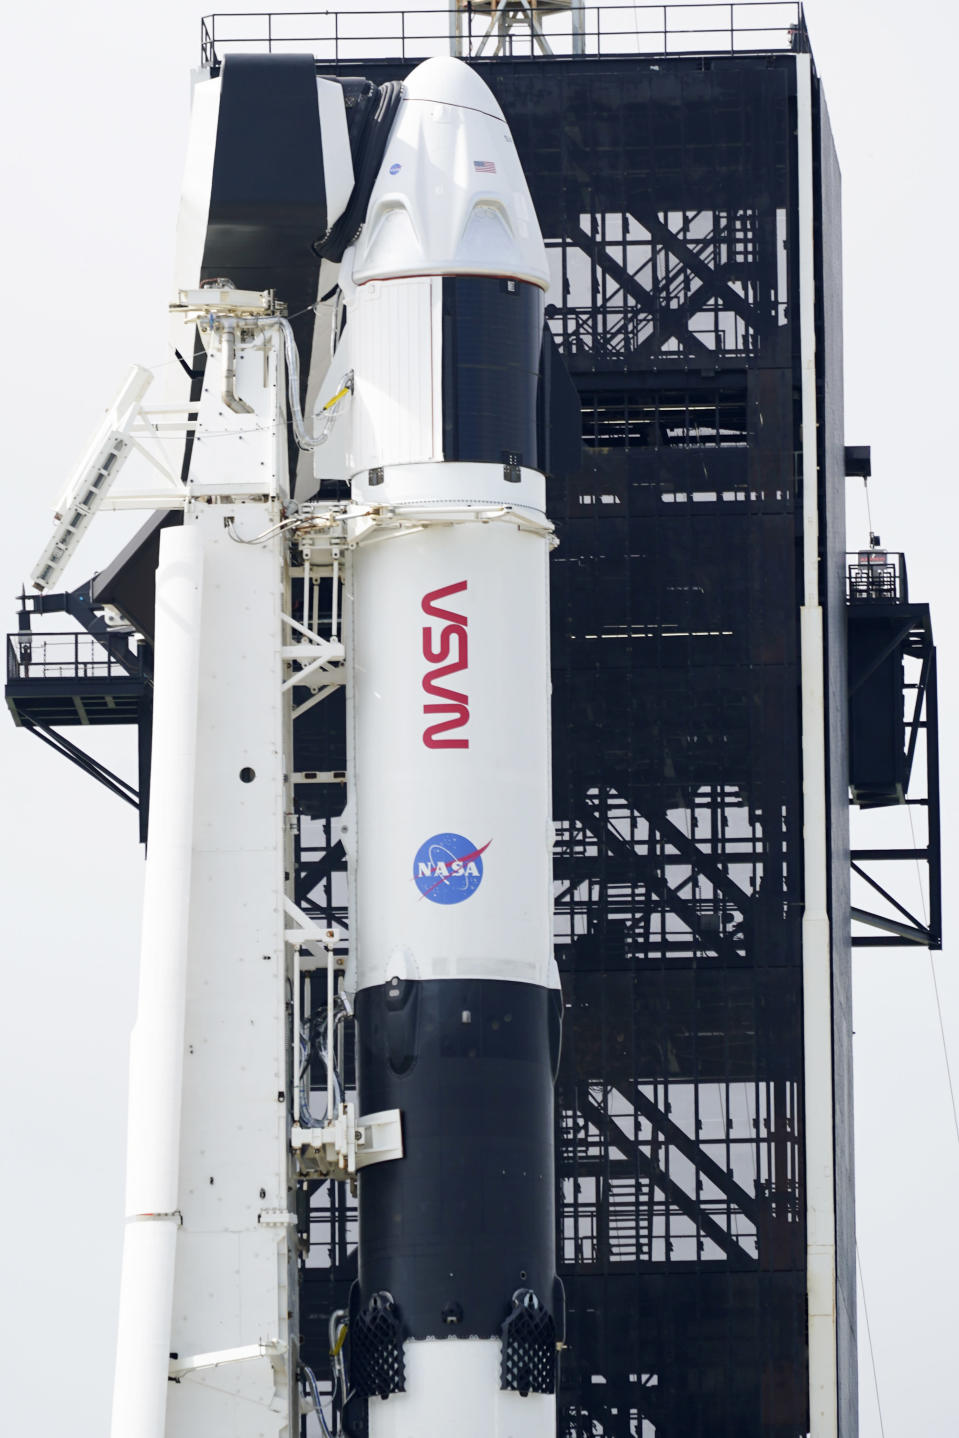 A SpaceX Falcon 9 rocket with the company's Crew Dragon spacecraft onboard is seen on the launch pad at Launch Complex 39A at the Kennedy Space Center in Cape Canaveral, Fla., Friday, Nov. 13, 2020. Four astronauts will fly on the SpaceX Crew-1 mission to the International Space Station. (AP Photo/John Raoux)